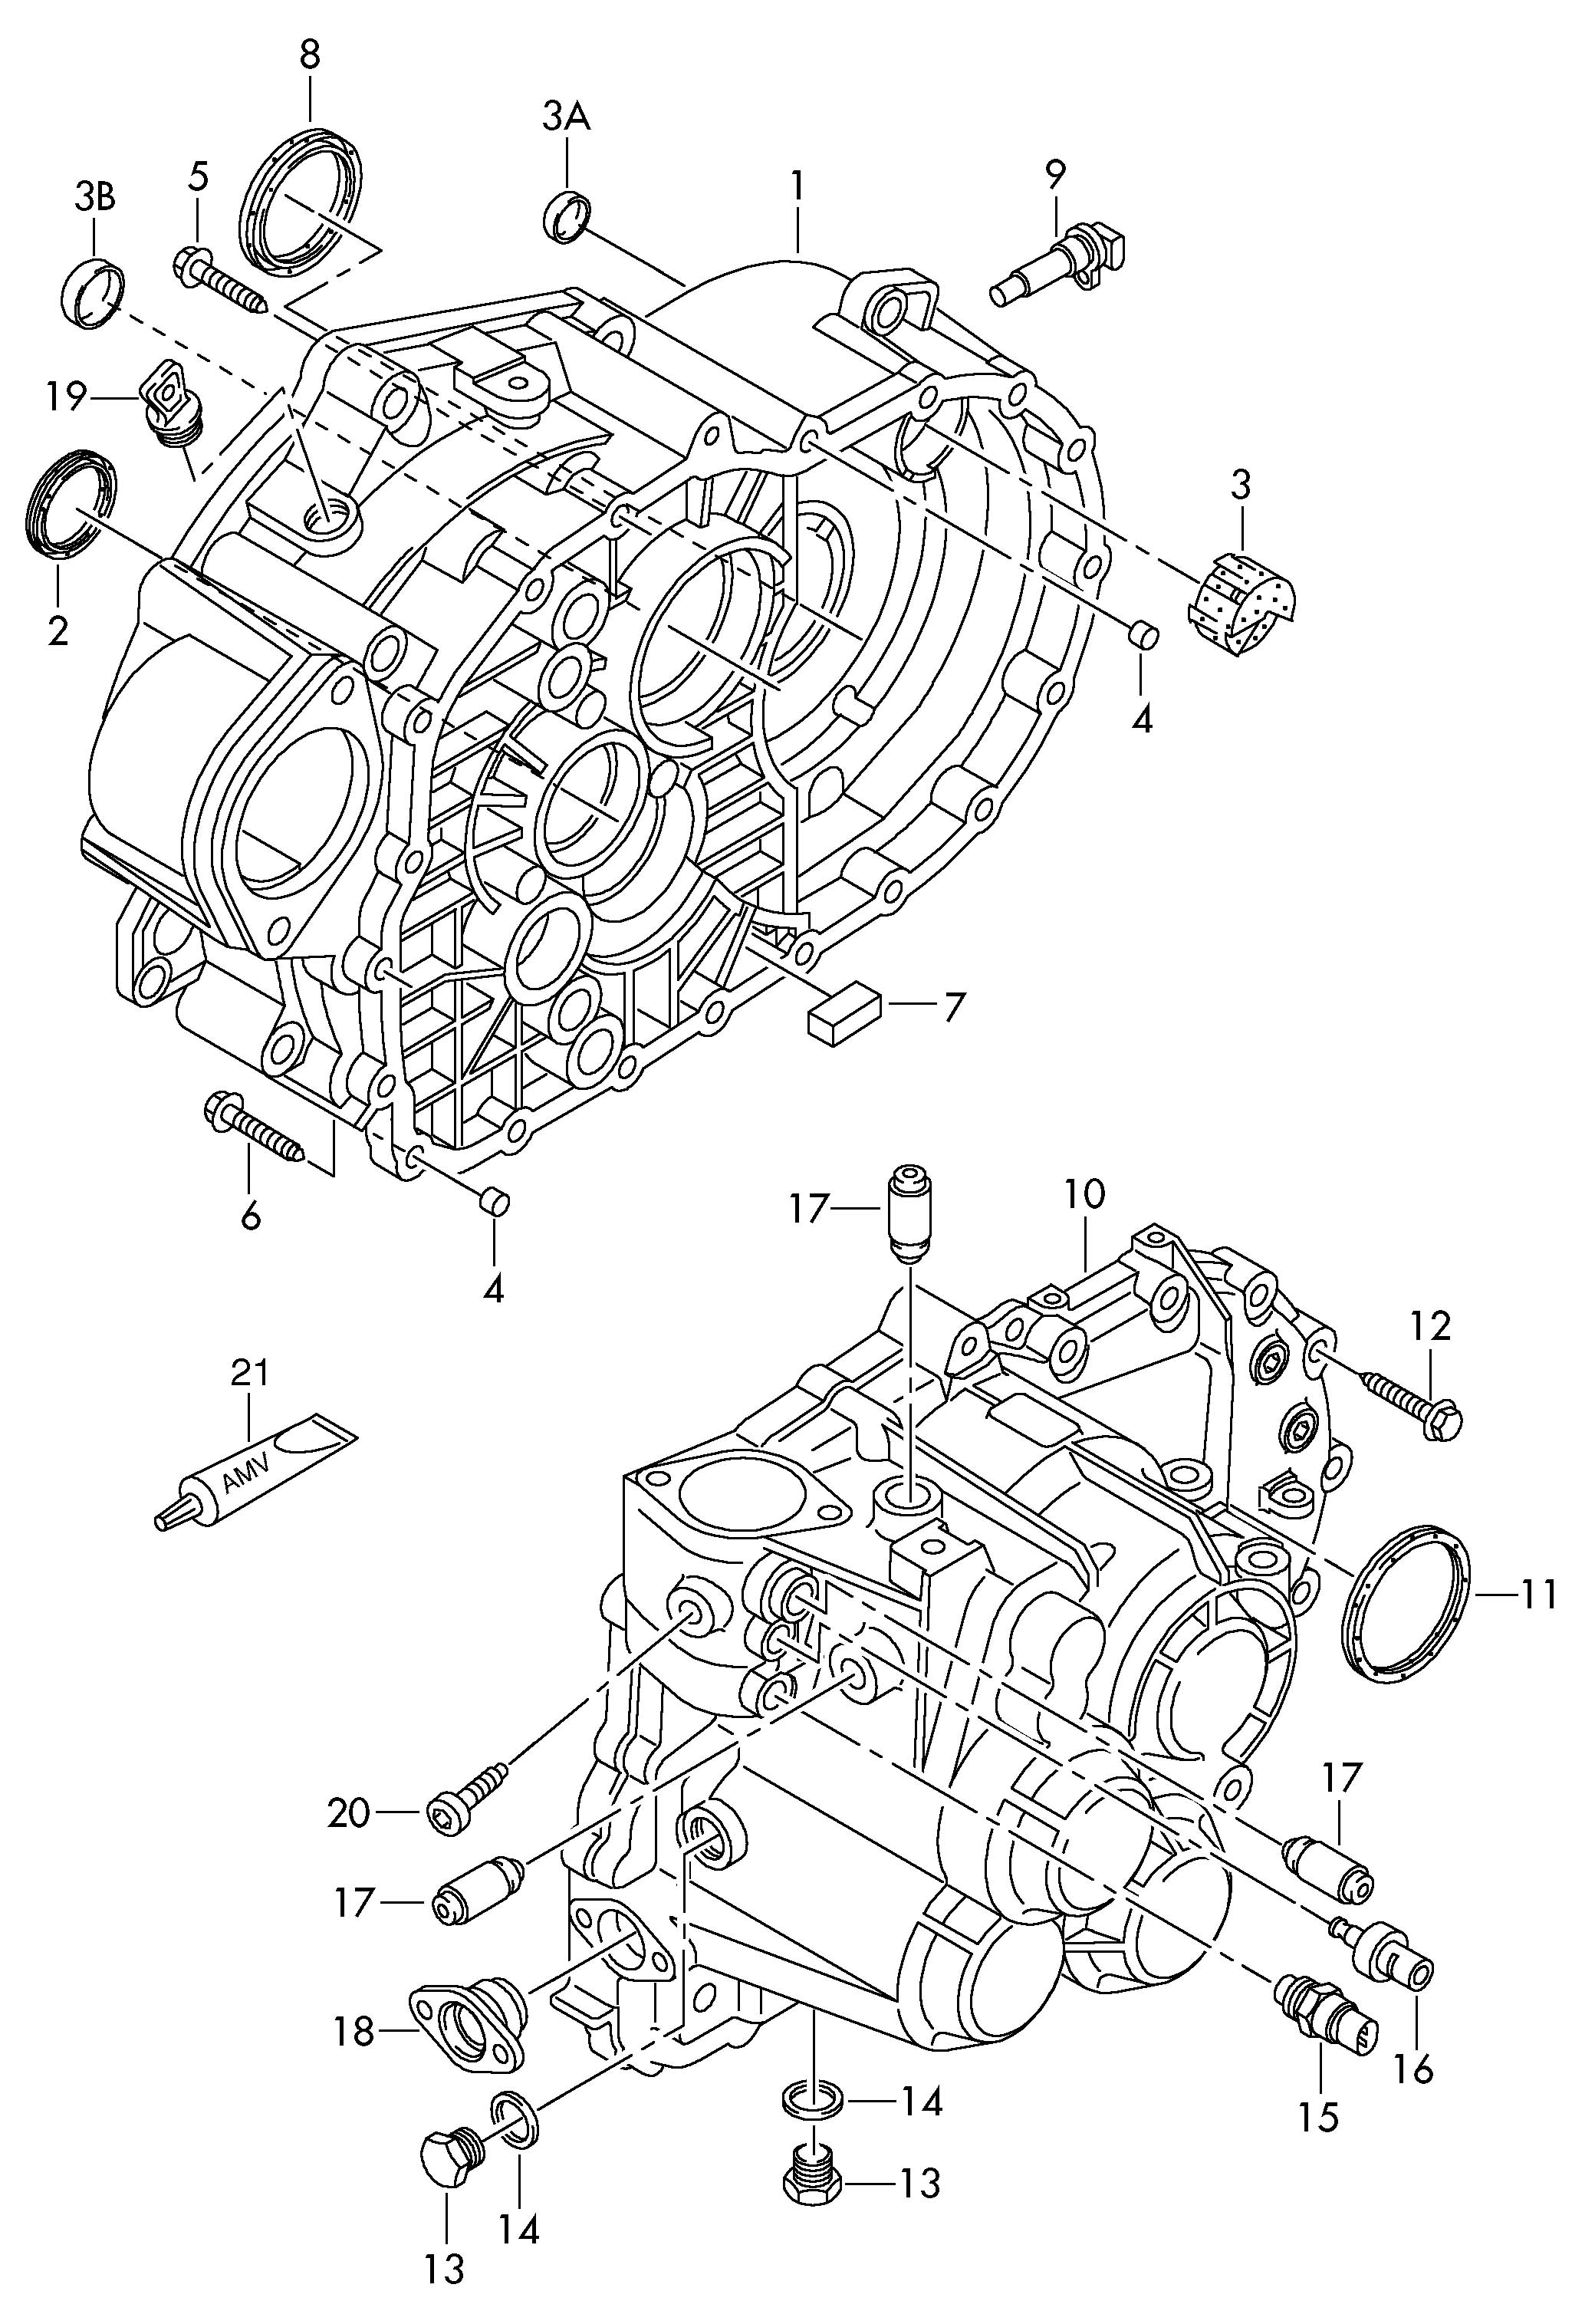 vw beetle transmission diagram f250 trailer wiring 1999 manual pictures to pin